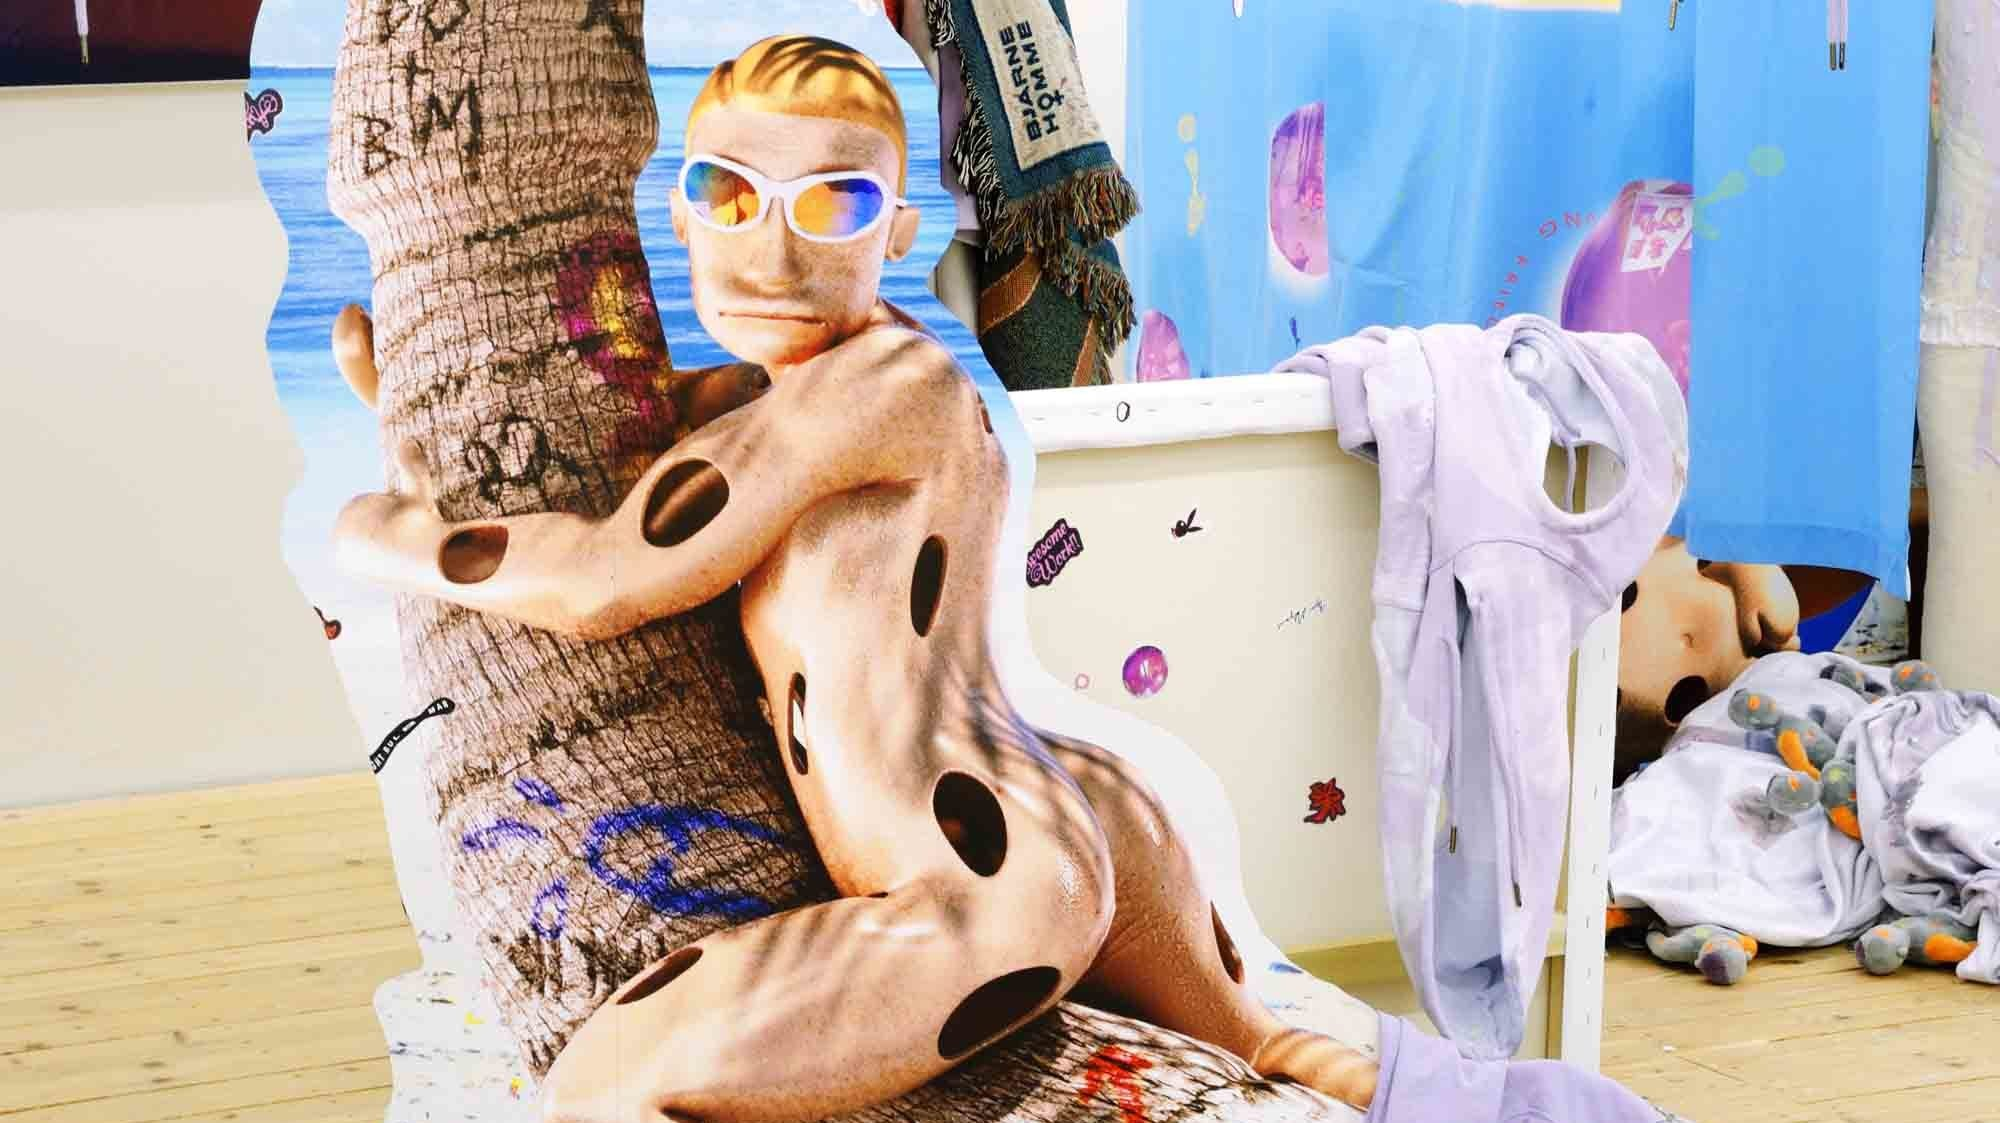 bjarne melgaard brings his psychedelic countryside pop-up to vfiles